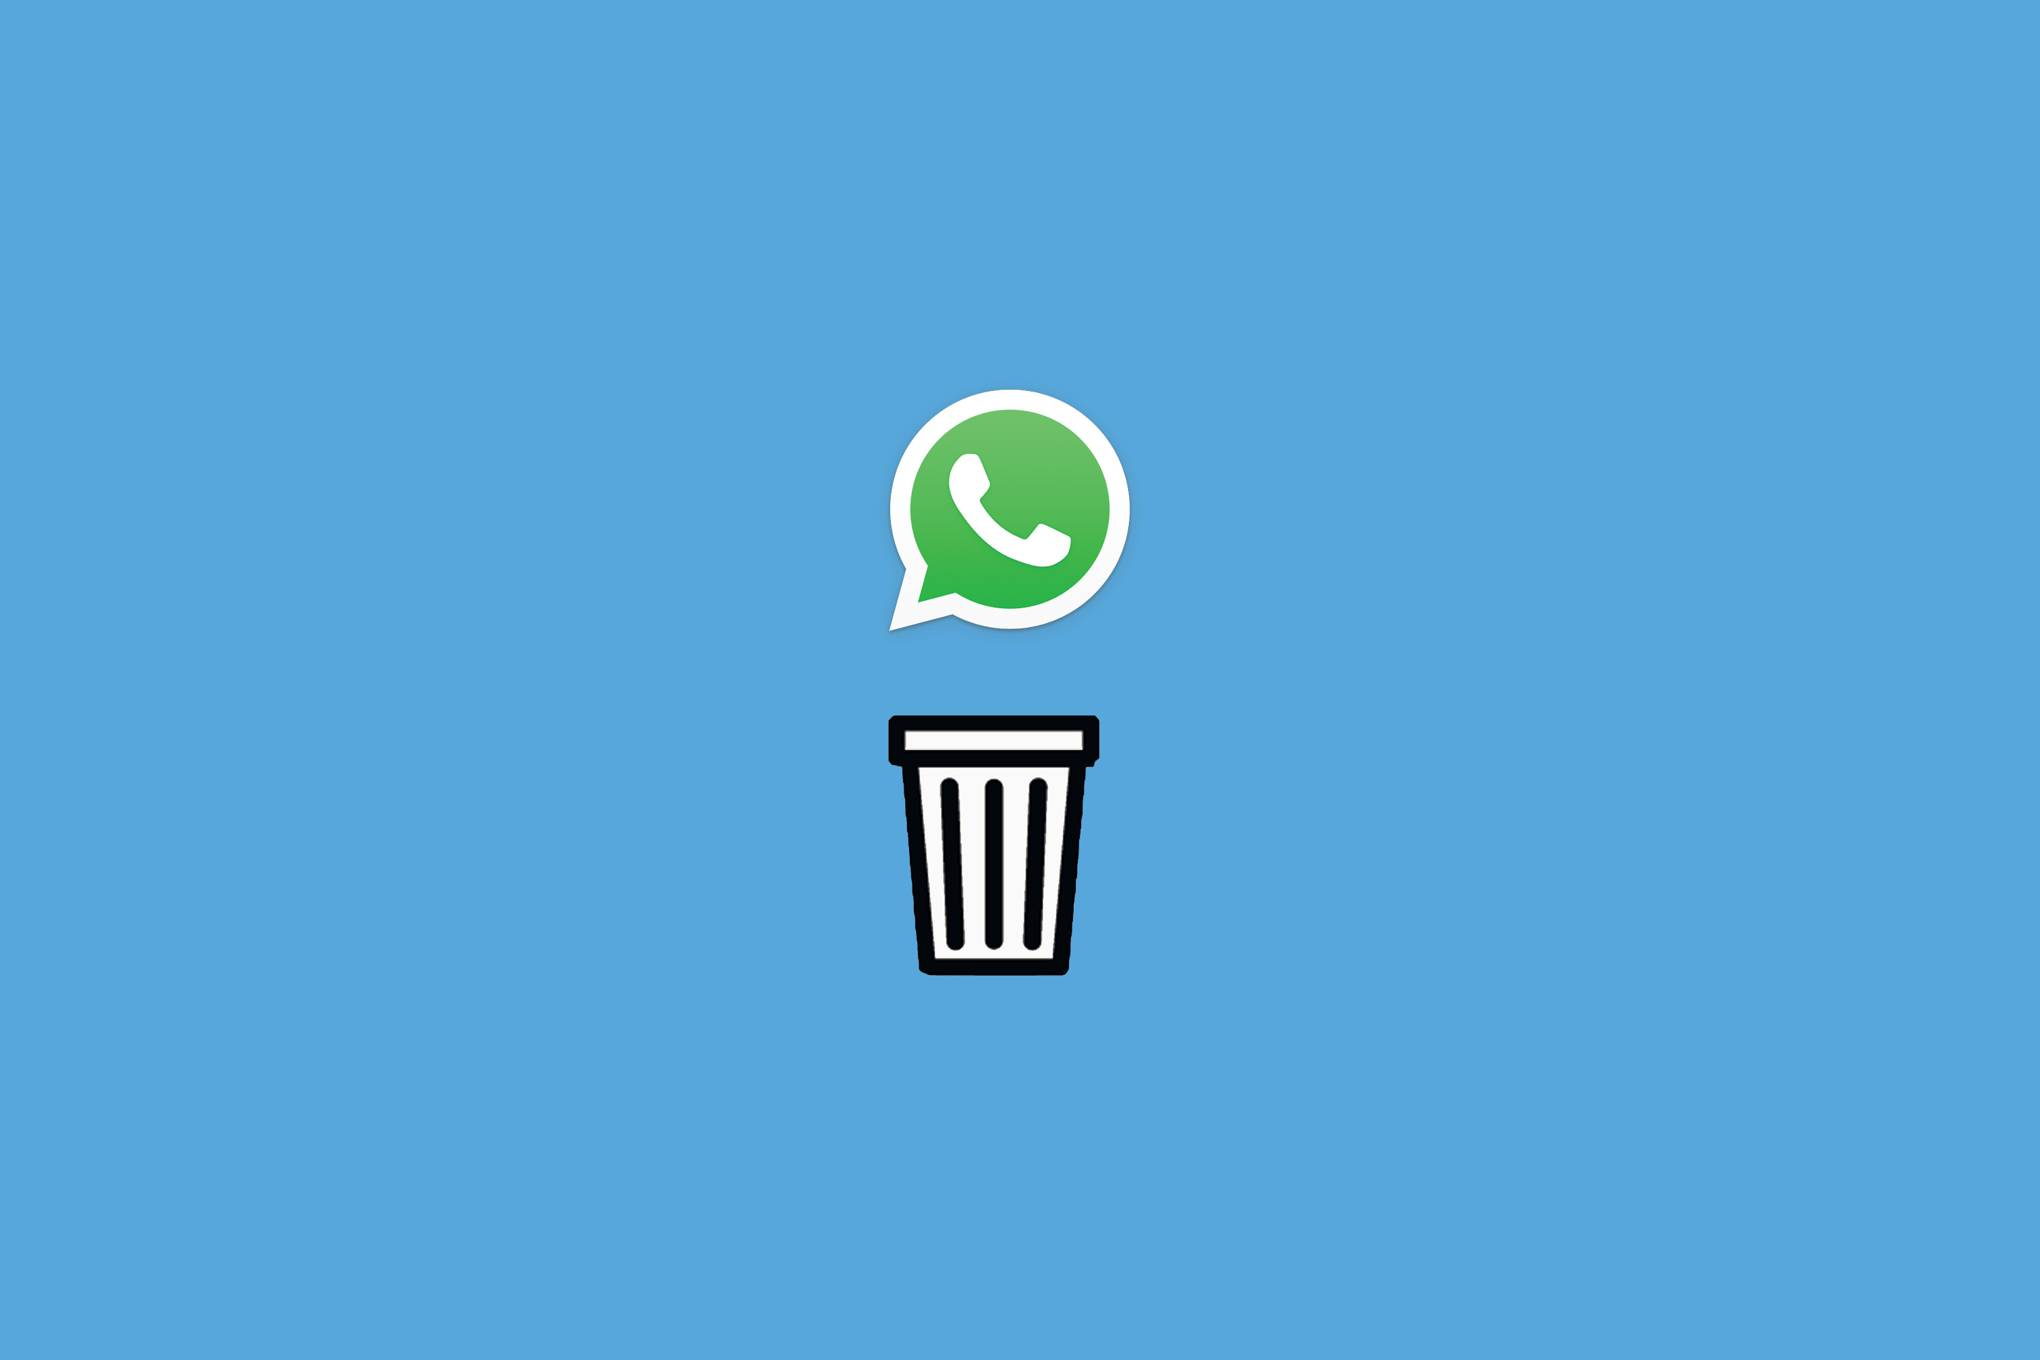 Looking for WhatsApp alternatives? Signal is your best bet